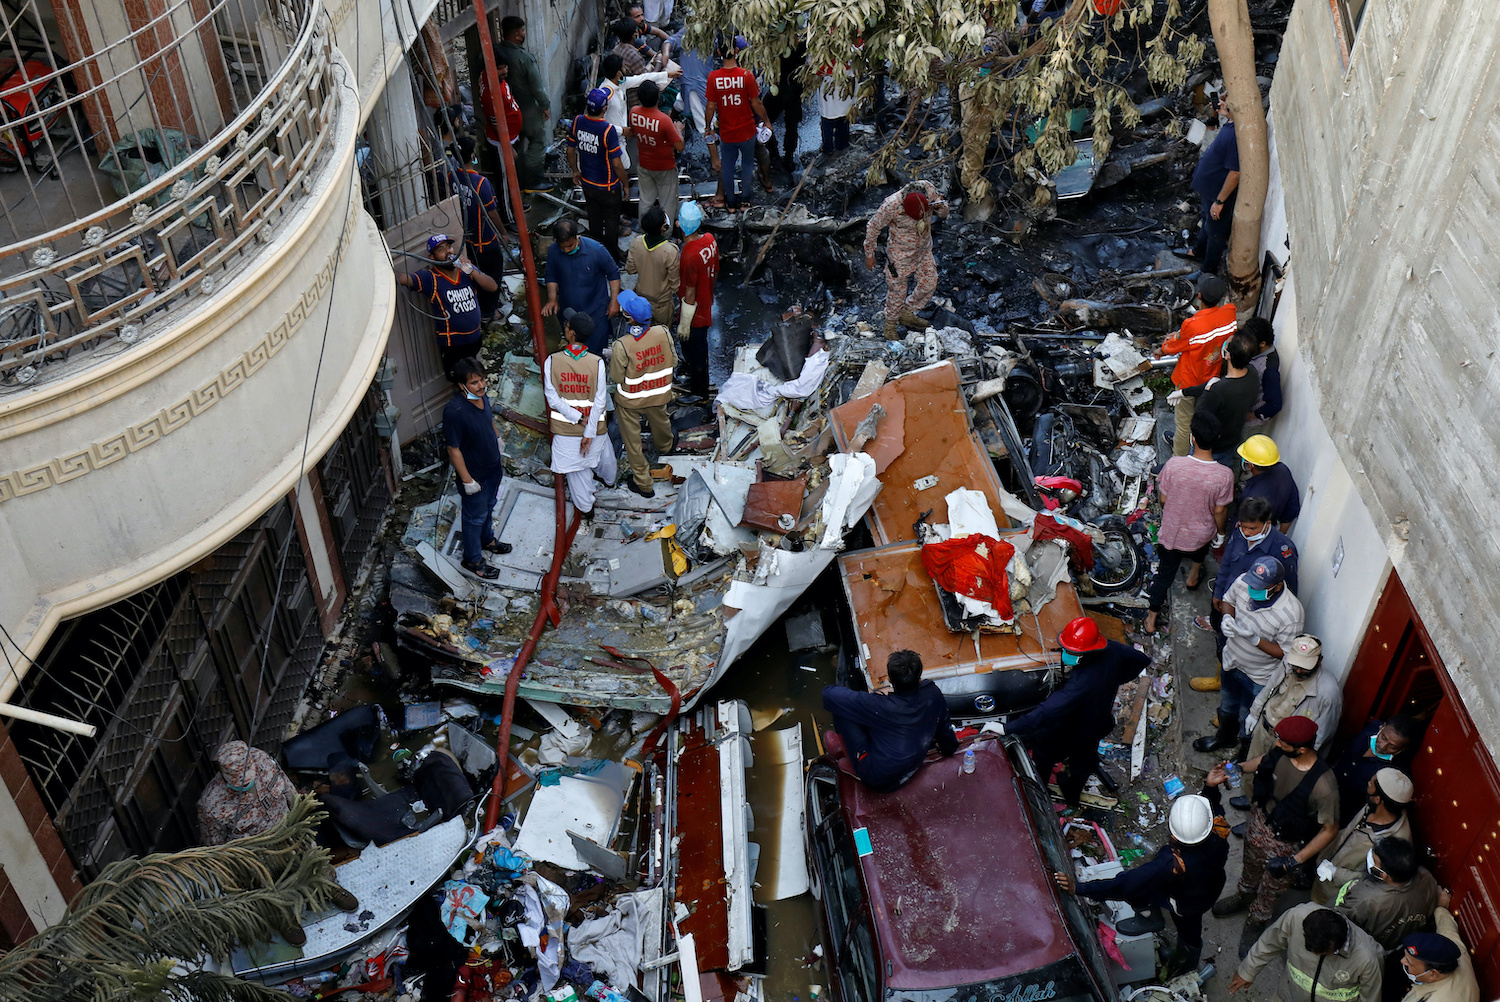 Rescue workers survey the wreckage of a passenger plane strewn along a residential street not far from the airport in Karachi, Pakistan on Friday. (Reuters Photo)